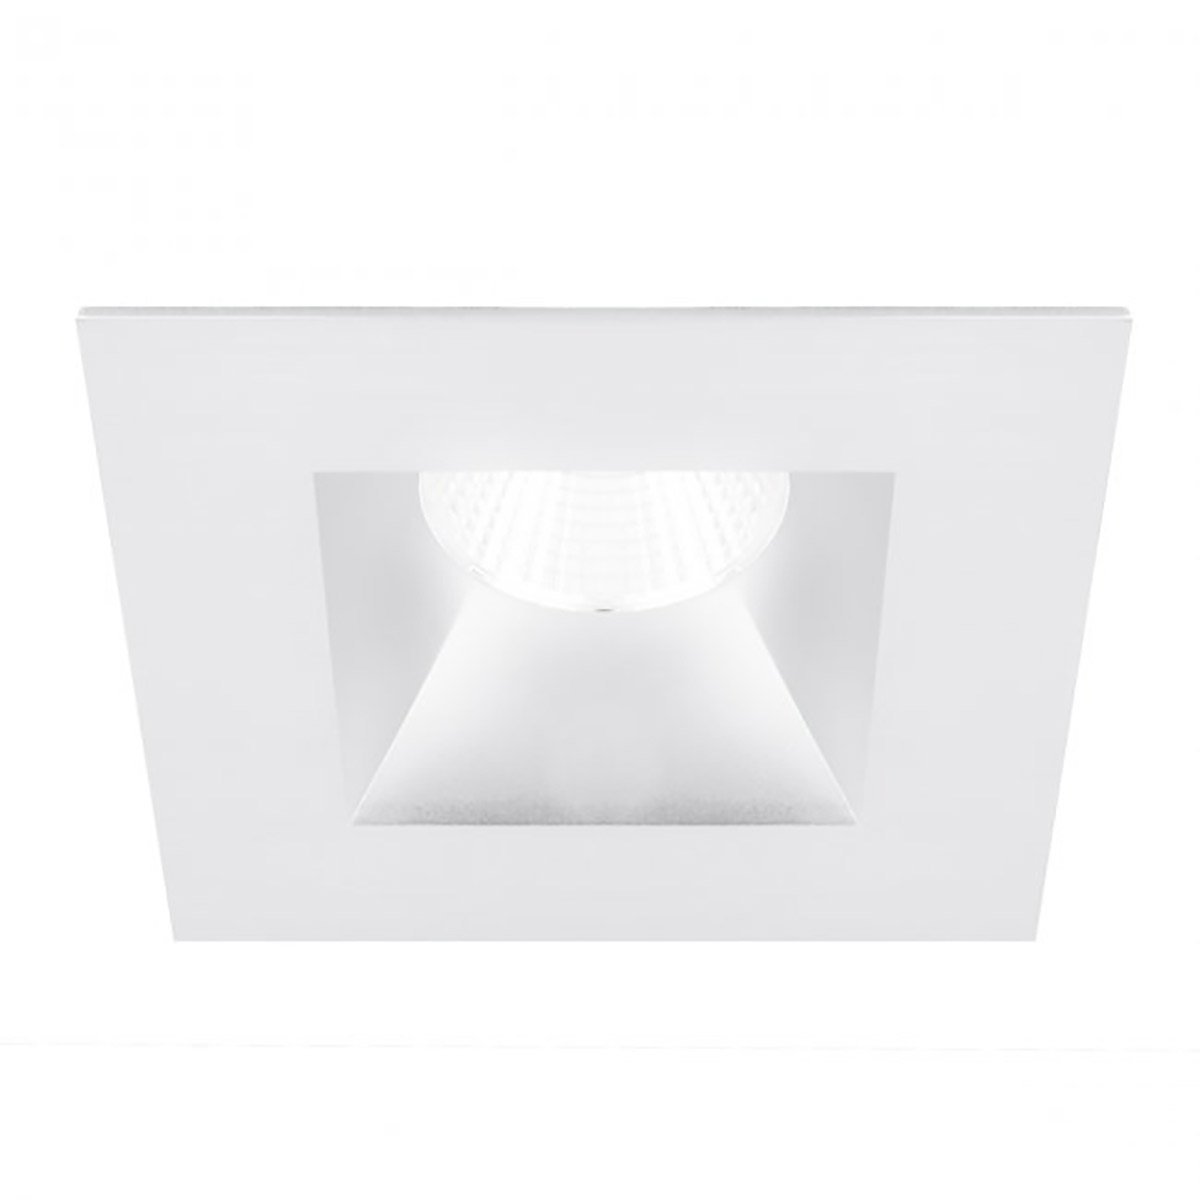 WAC Lighting R3BSD-S927-WT Oculux 3.5'' LED Square Open Reflector Trim Engine in White Finish; Spot Beam, 90+CRI and 2700K by WAC Lighting